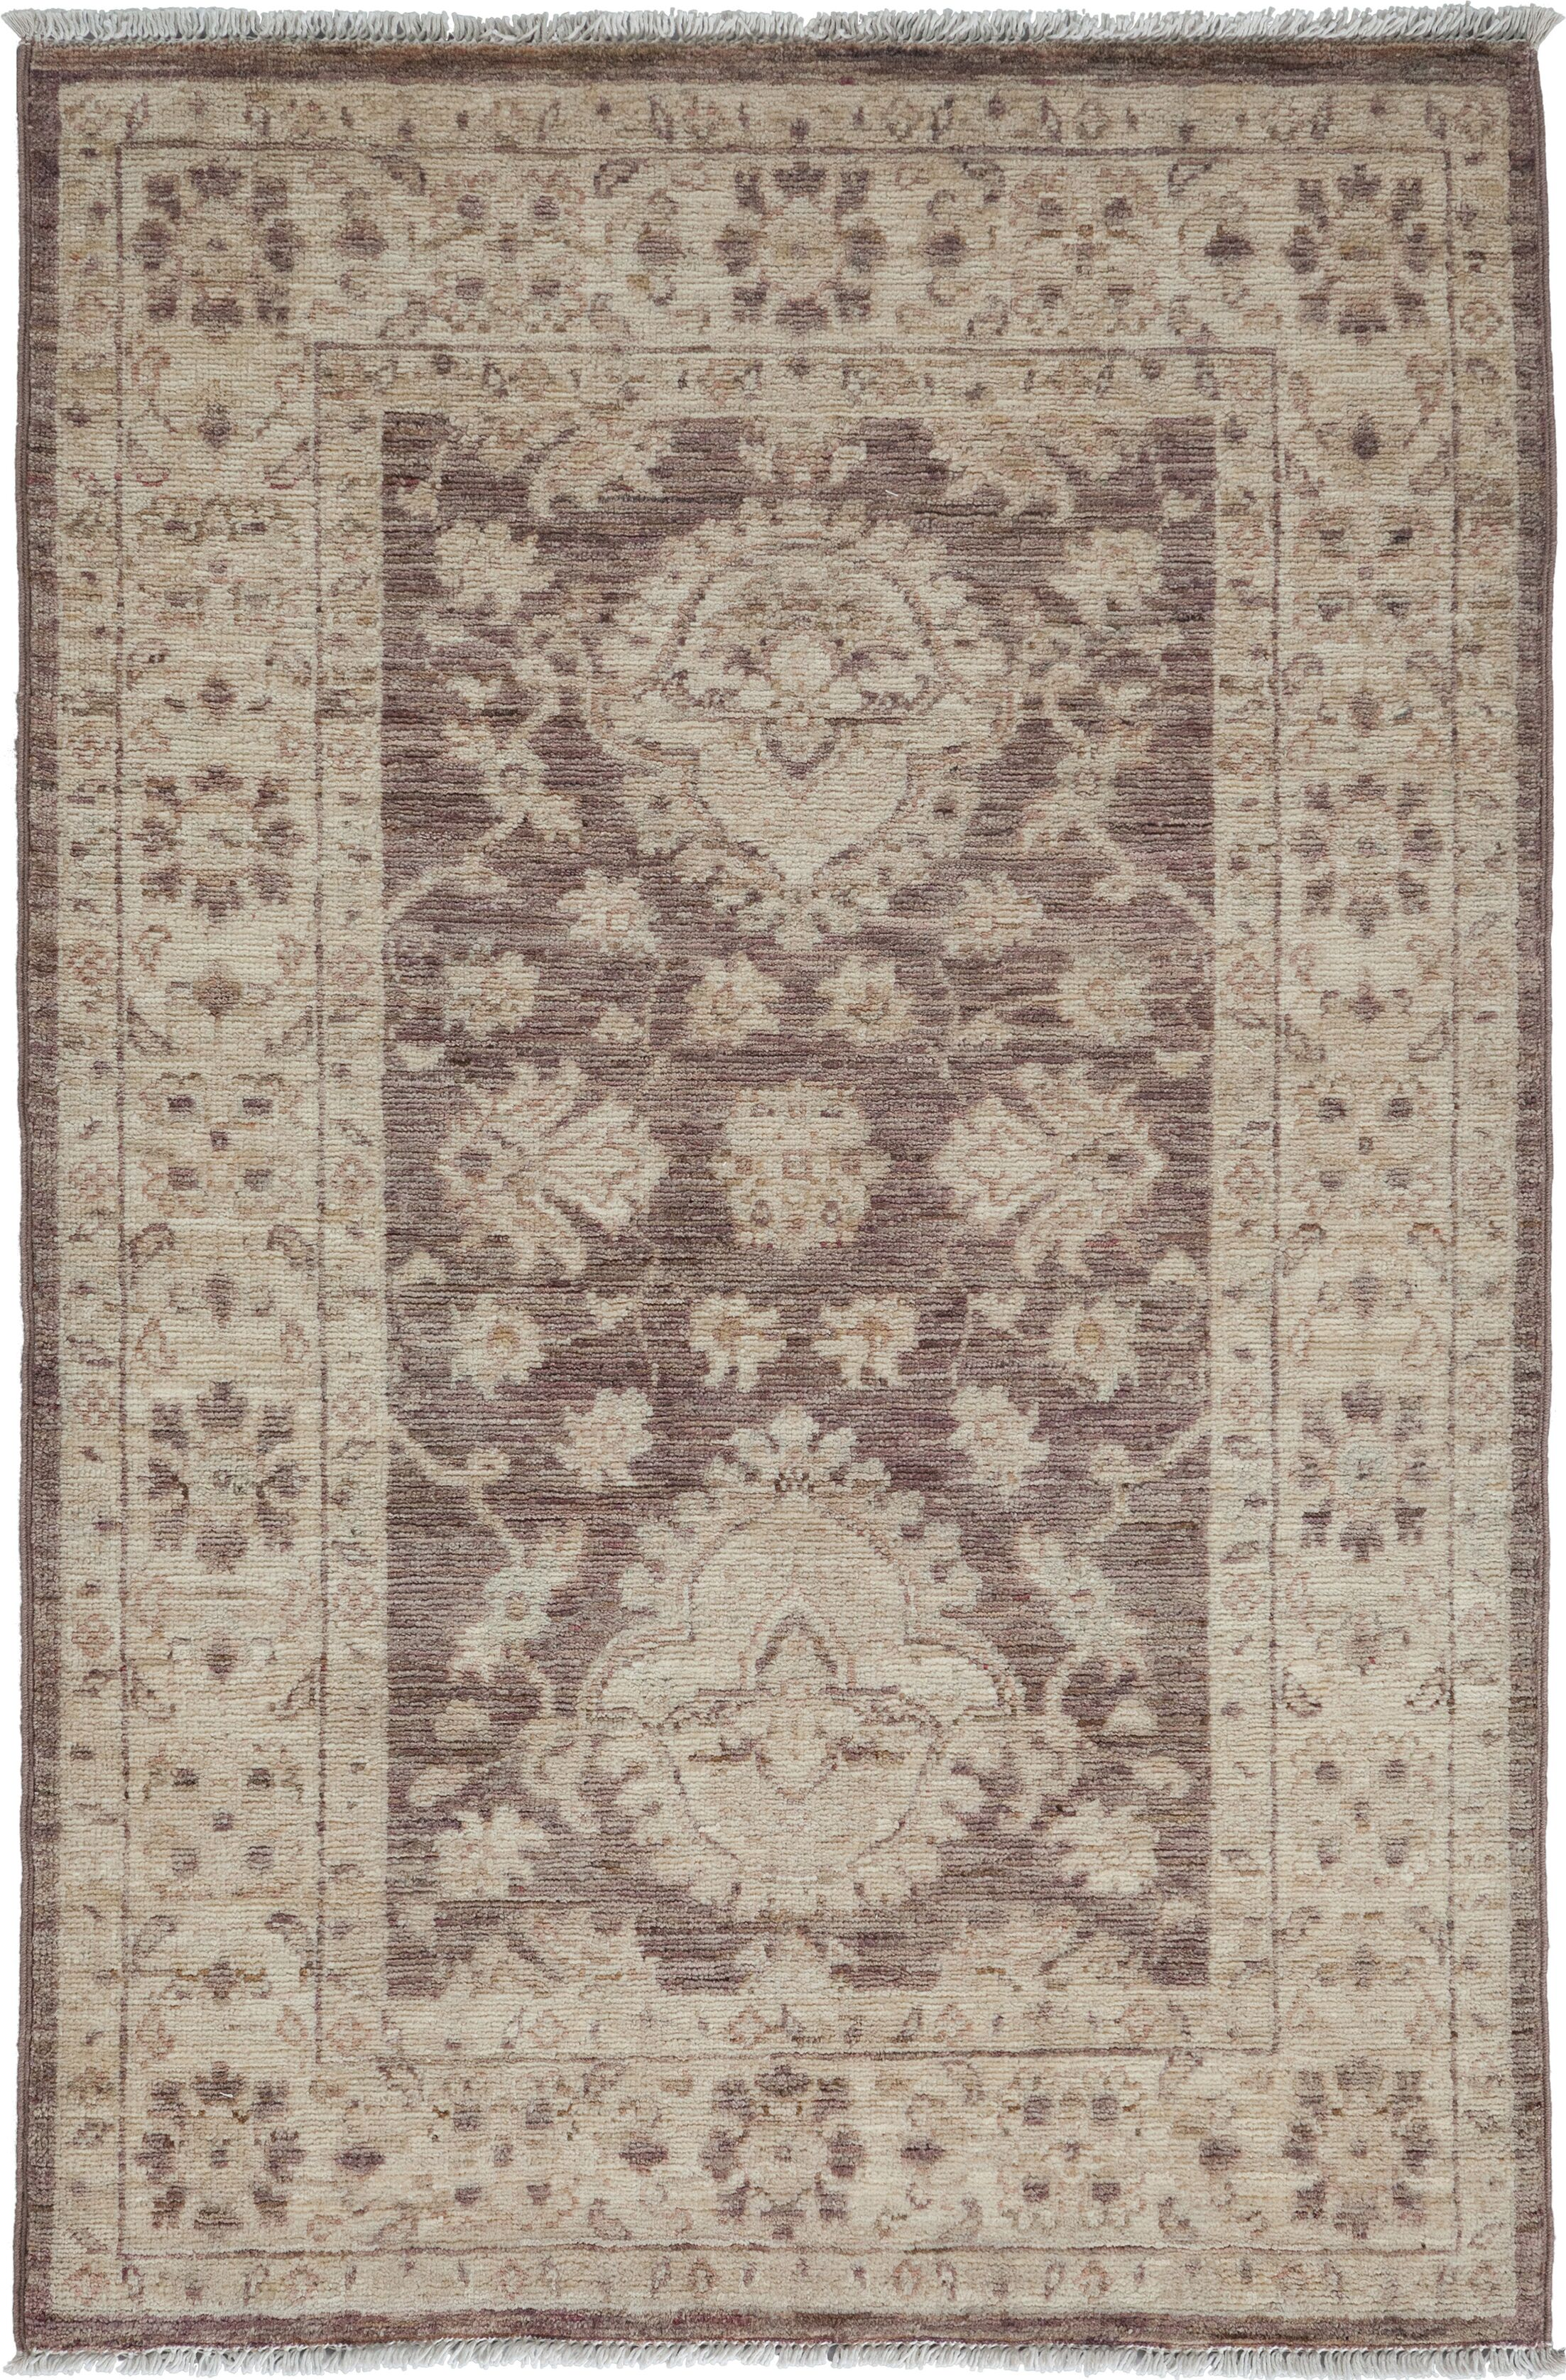 One-of-a-Kind Oushak Hand-Knotted Walnut Area Rug Rug Size: Rectangle 2'9